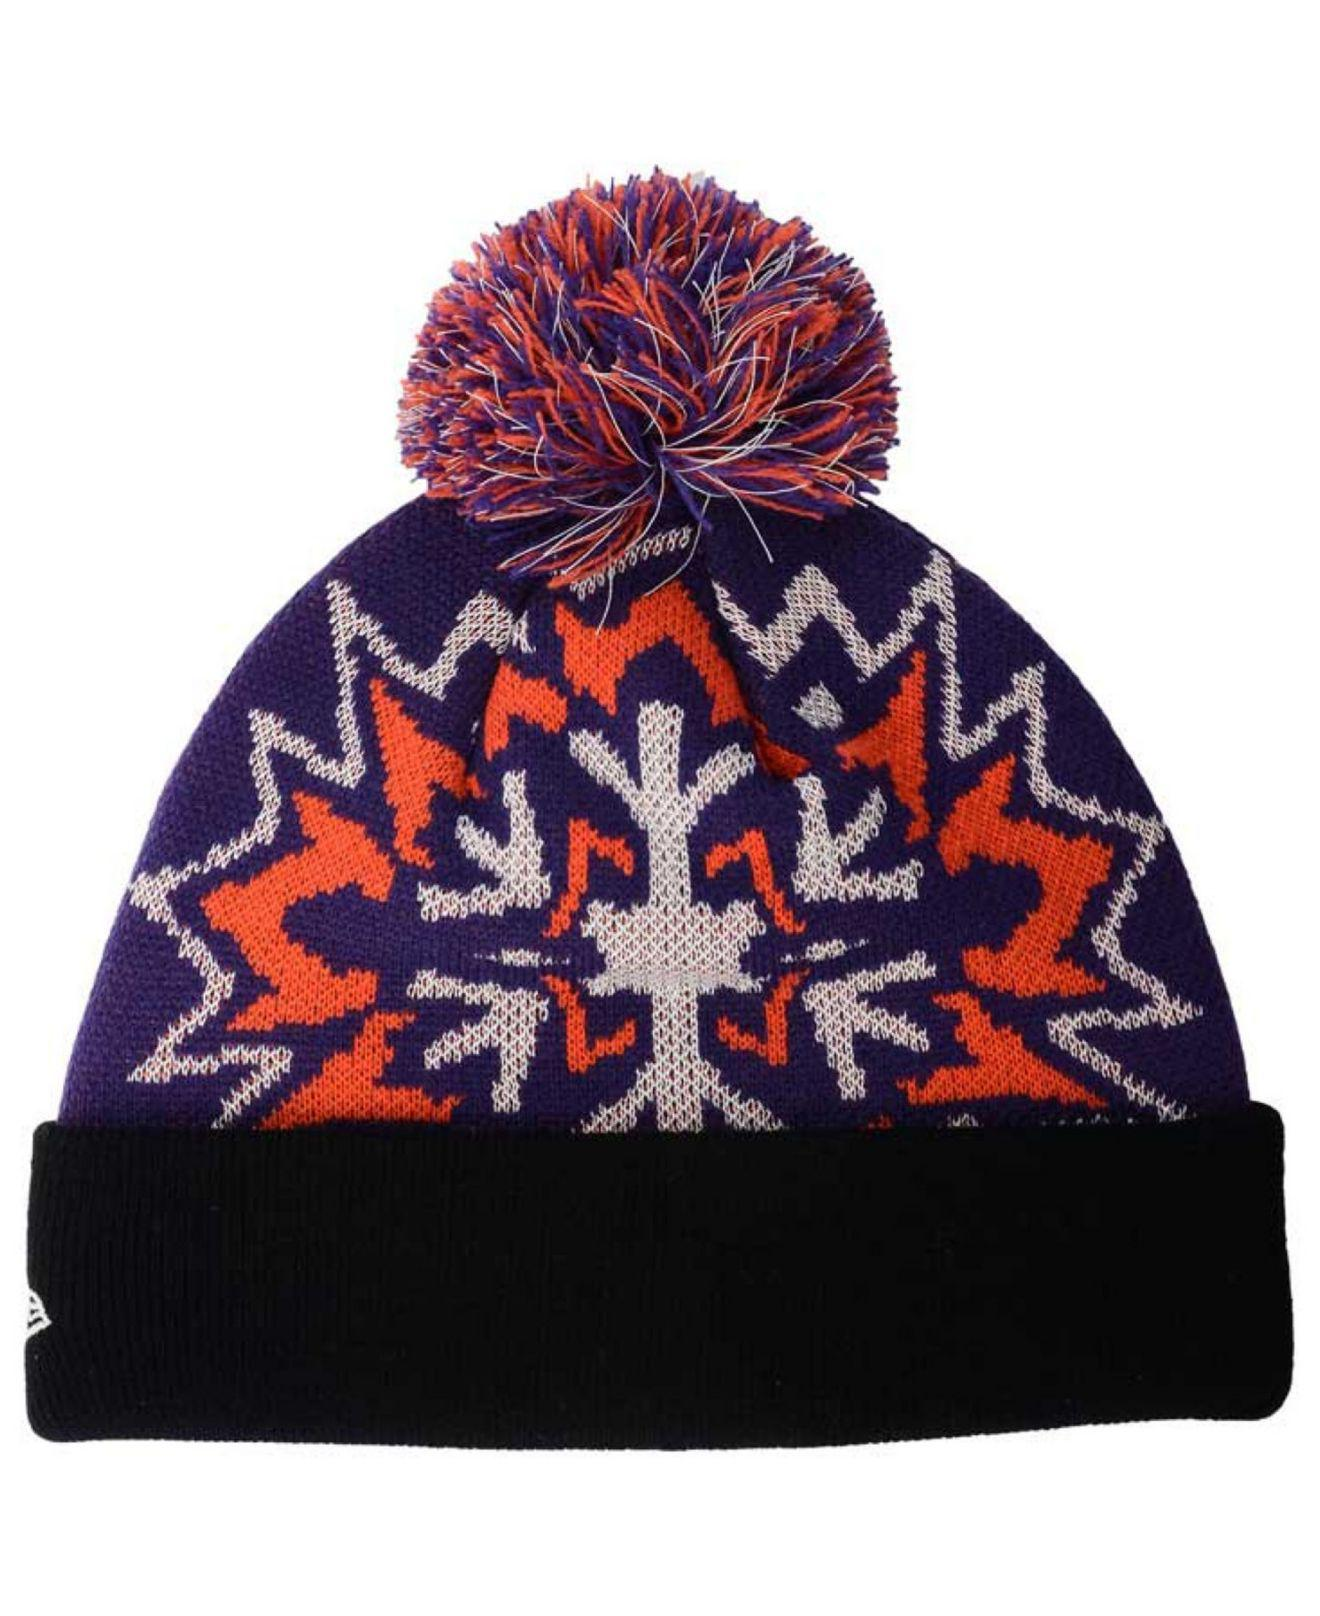 6795f18a630a6 Lyst - Ktz Phoenix Suns Glowflake Knit Hat in Purple for Men